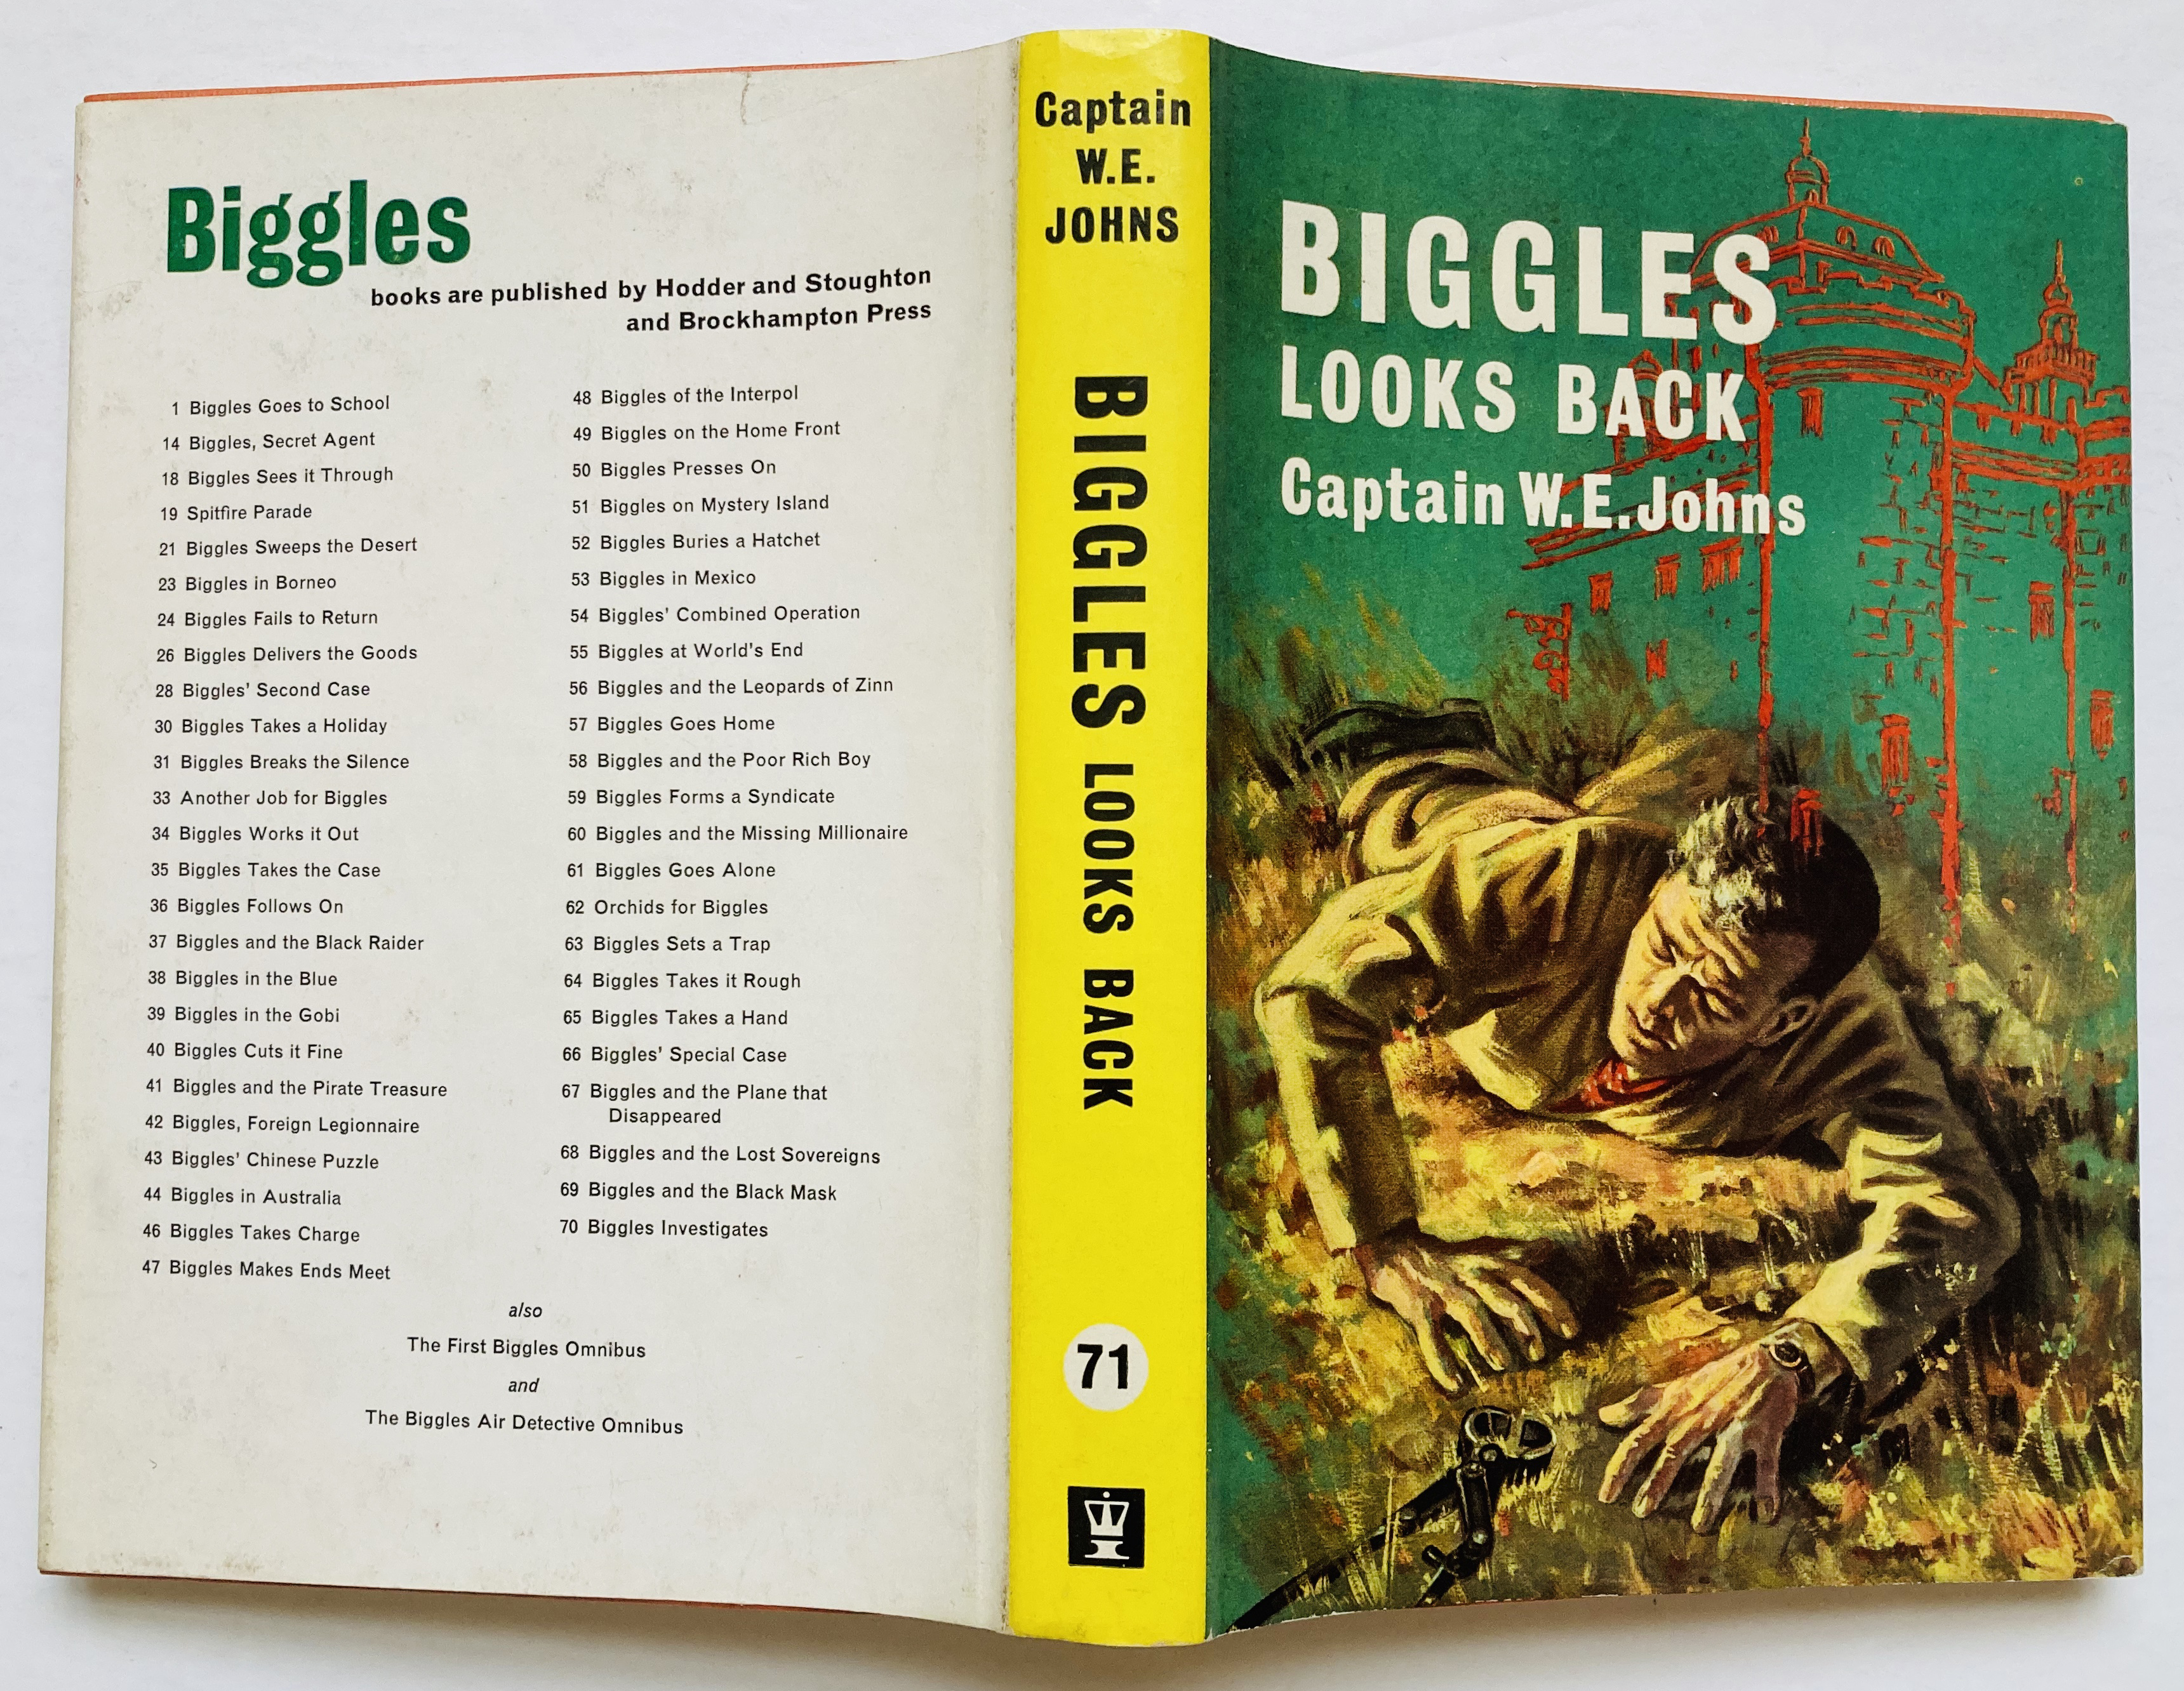 Lot 50 - Biggles Looks Back (1965 1st ed Hodder & Stoughton). Clean, fresh hardback book with white pages and